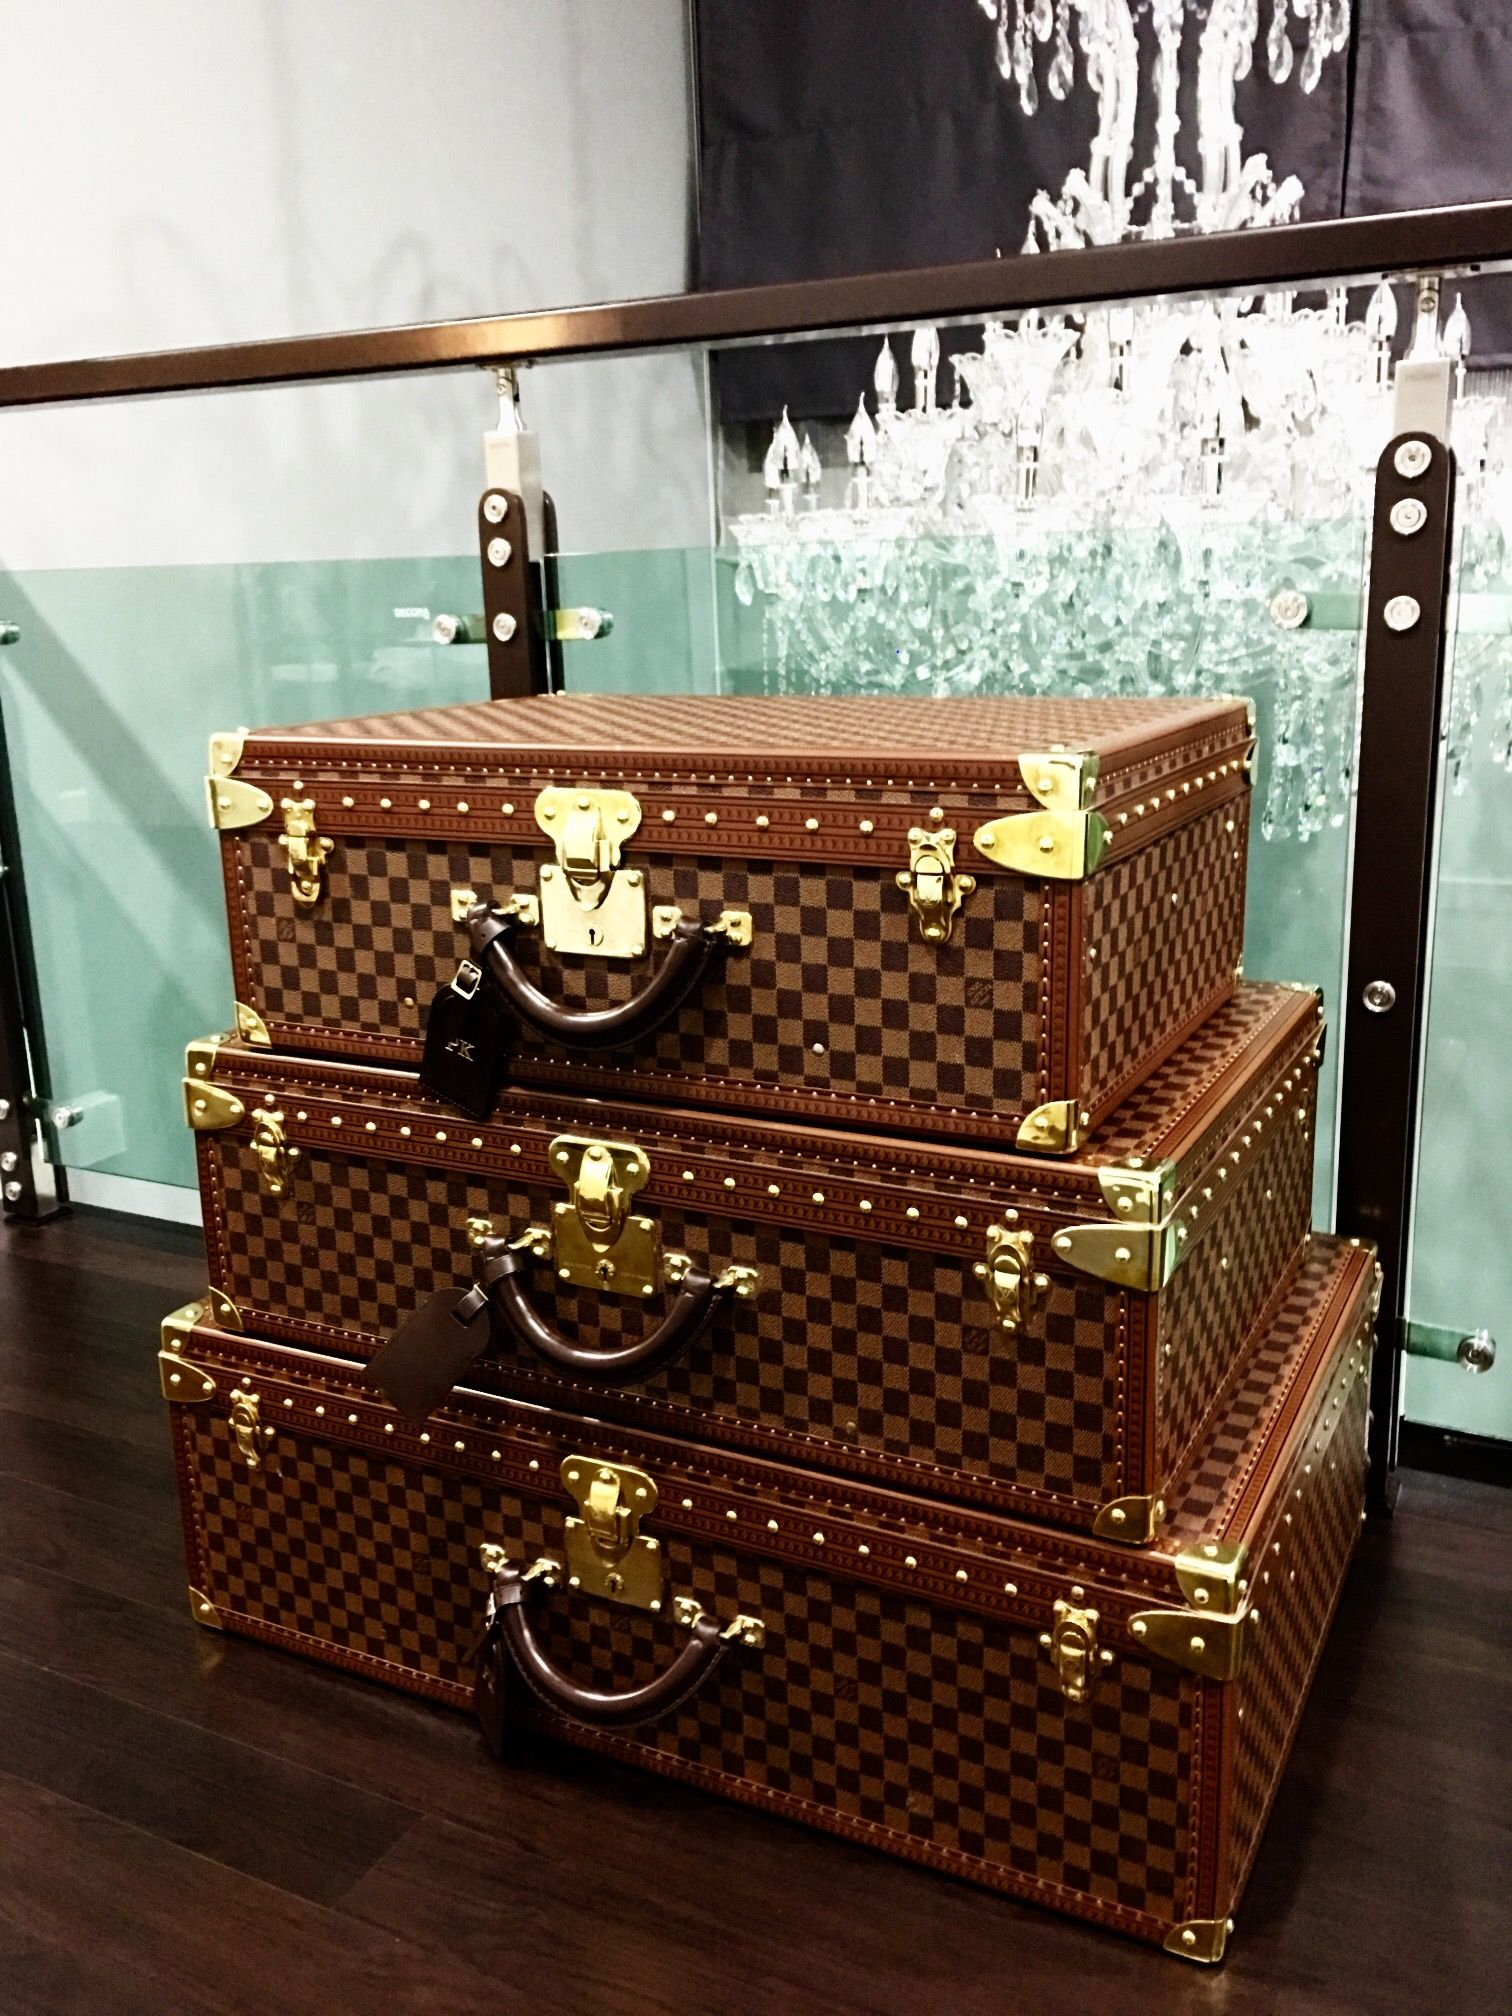 dd1874b46e66 Louis Vuitton Hardside luggage. Alzer 60.70.80 KOS home